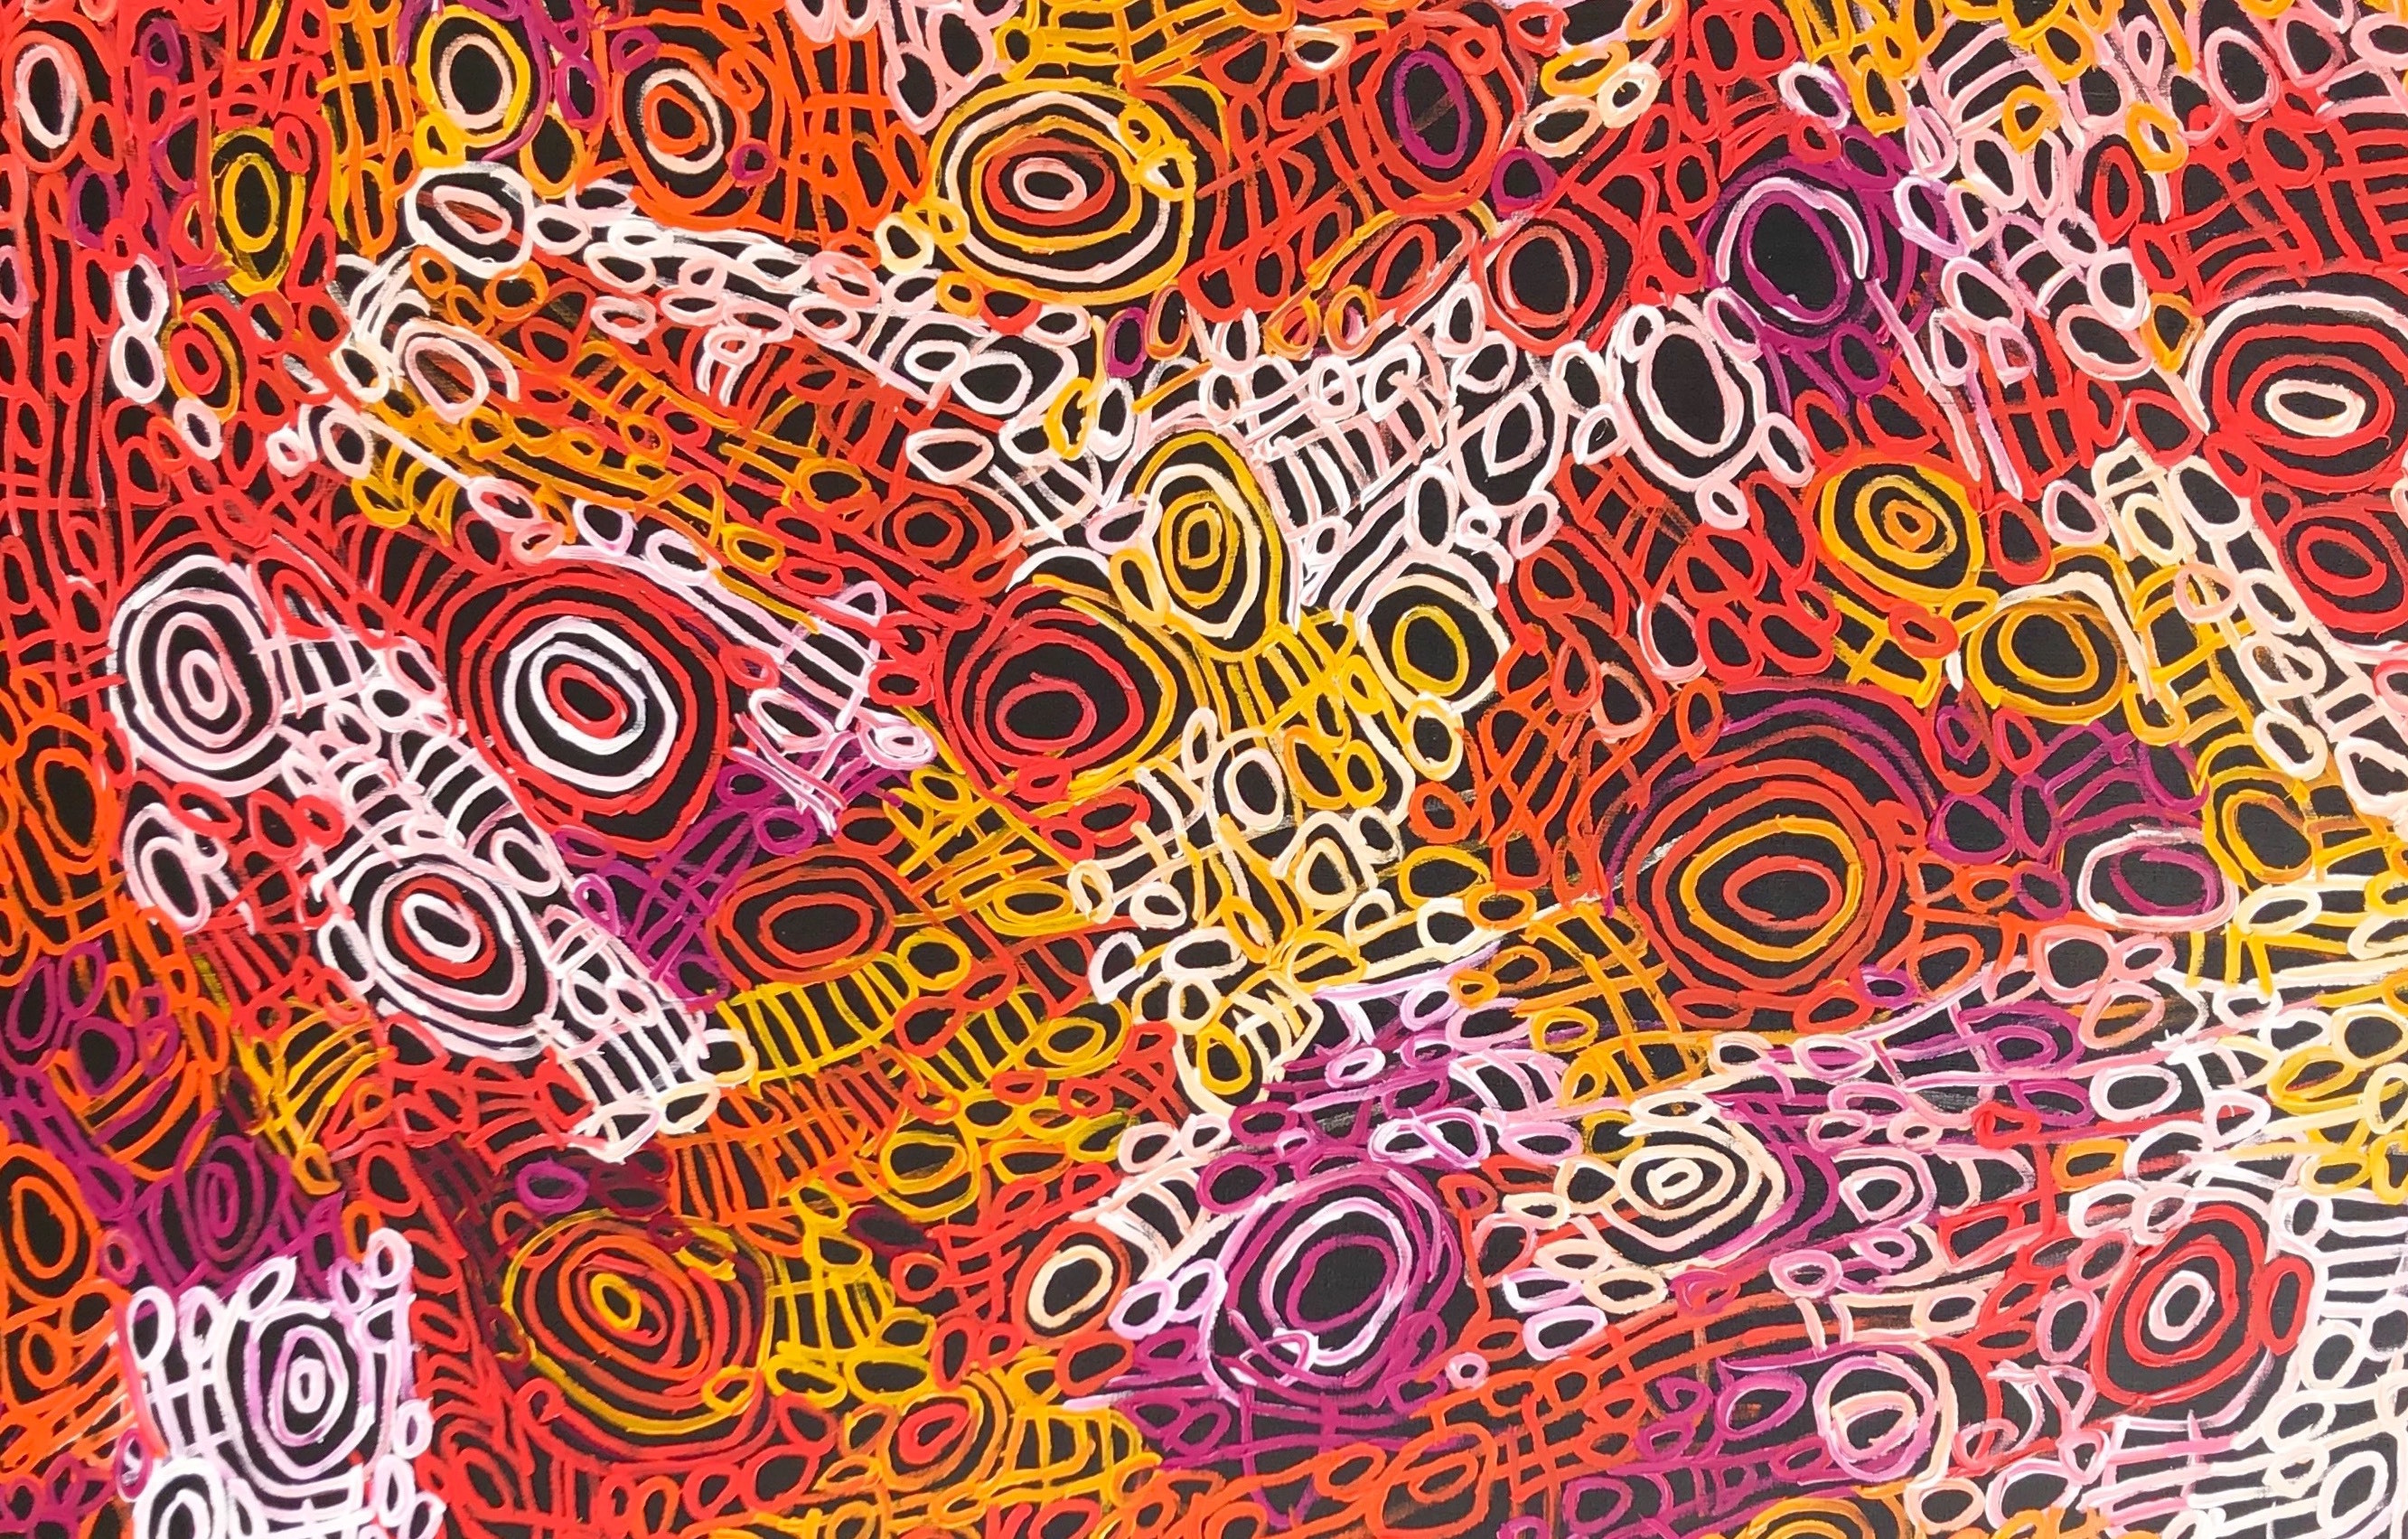 Adelaide's Pwerle Gallery is popping-up at Mercedes me Melbourne